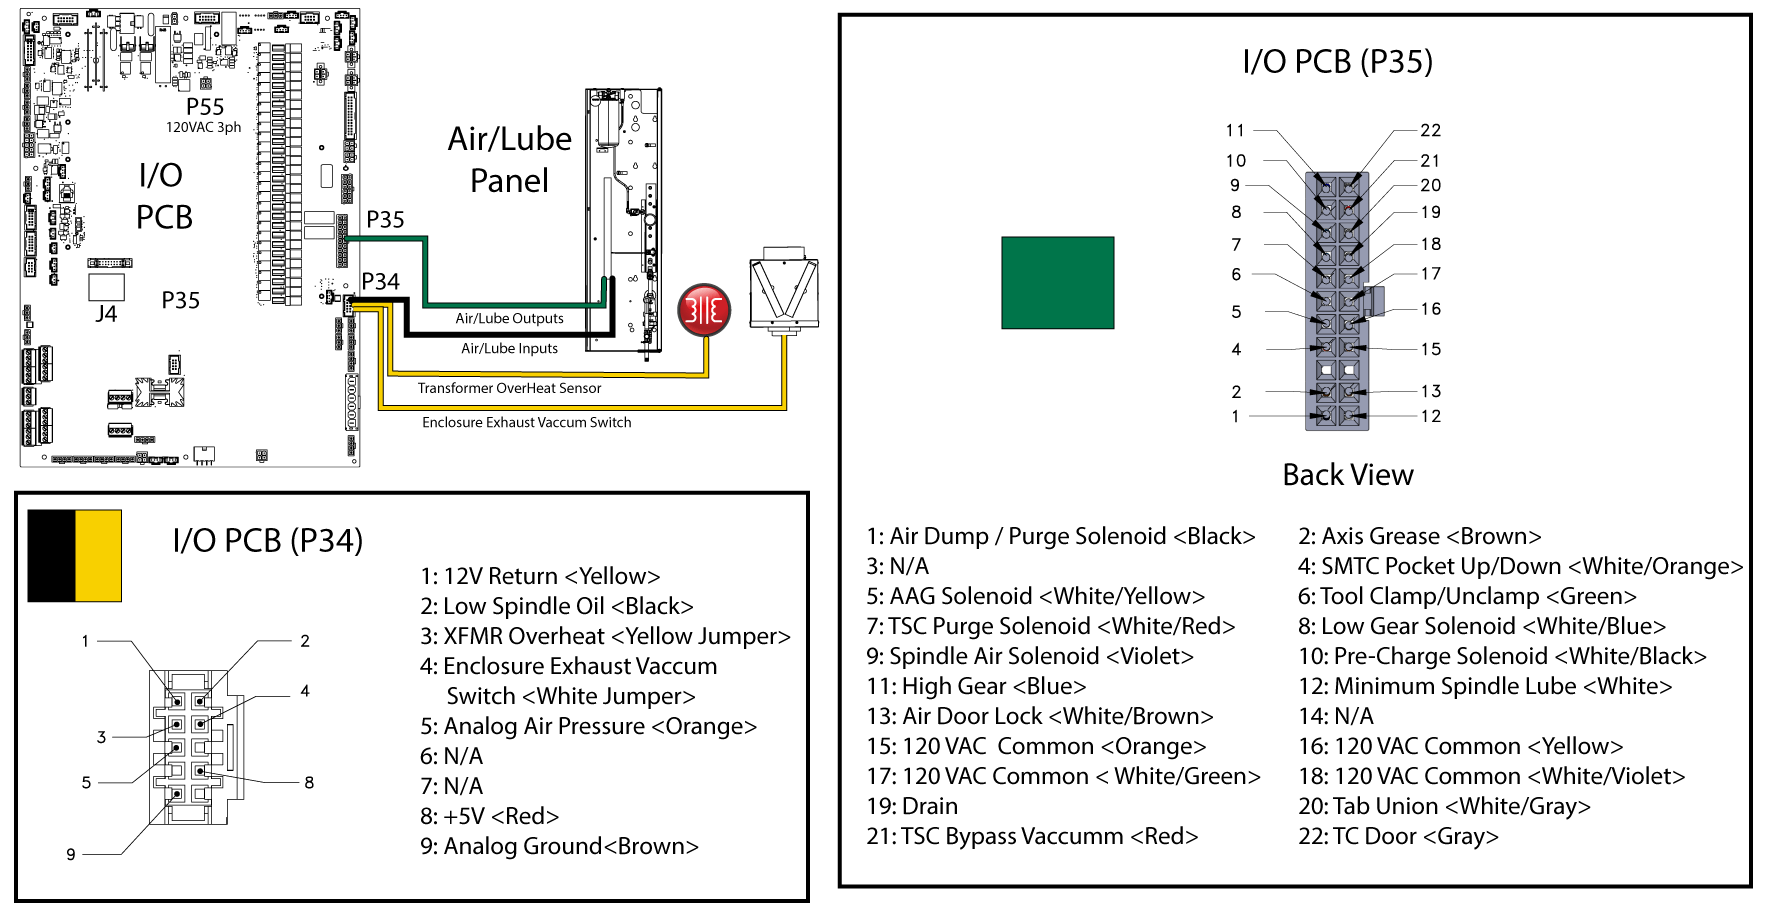 hight resolution of i o pcb p34 p35 to mill air lube panel detail diagram